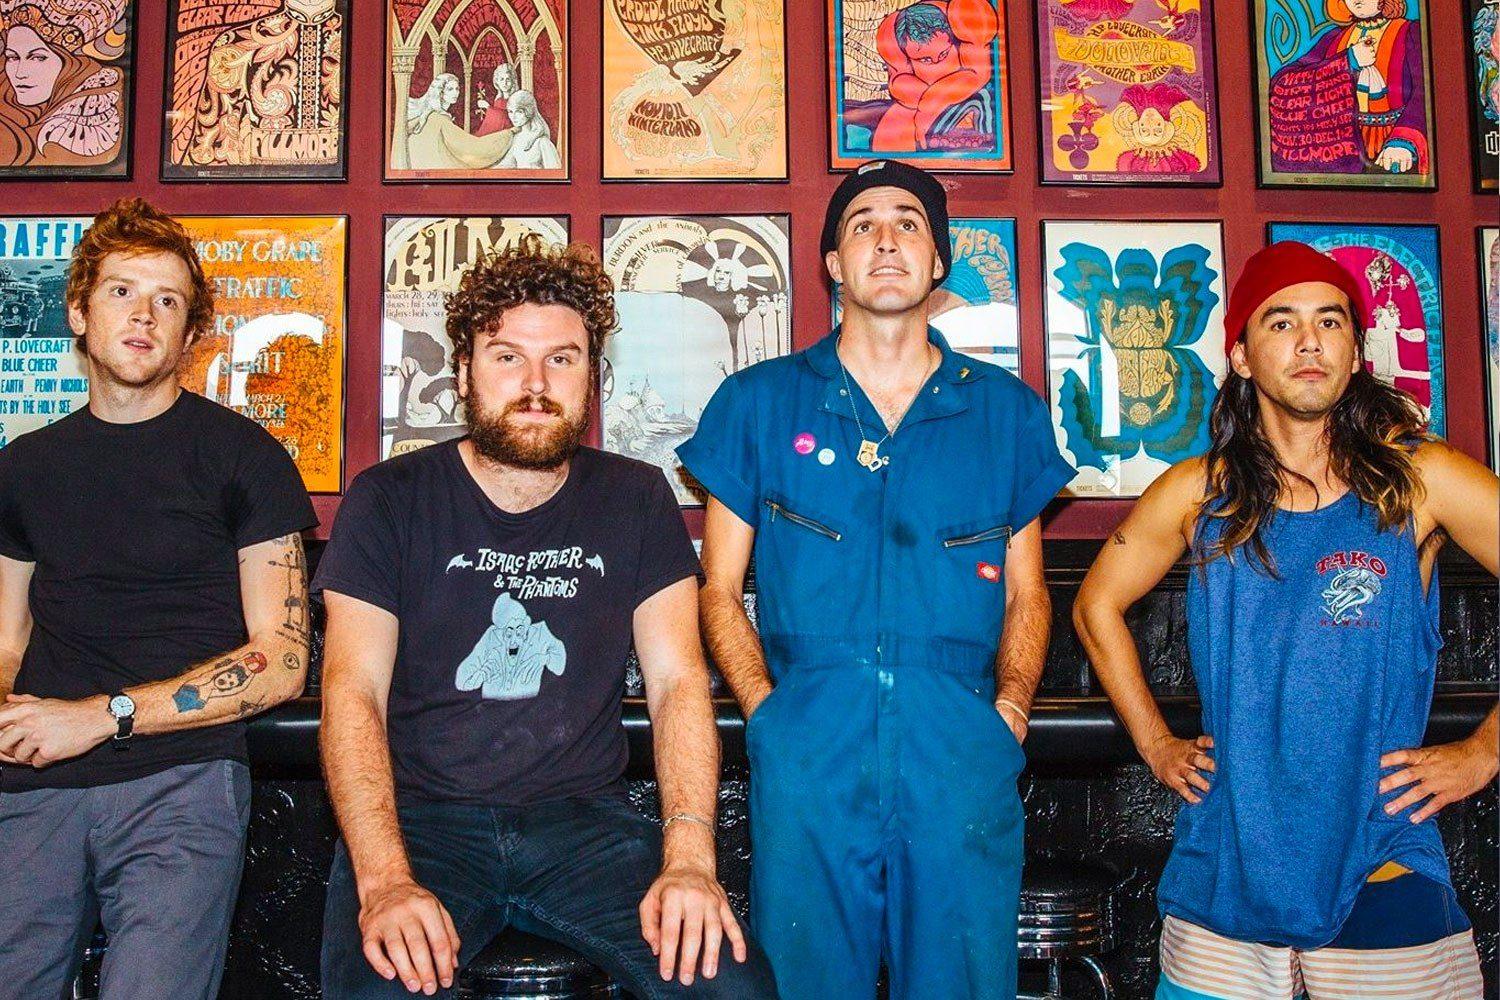 FIDLAR are playing a one-off London show on 31st January